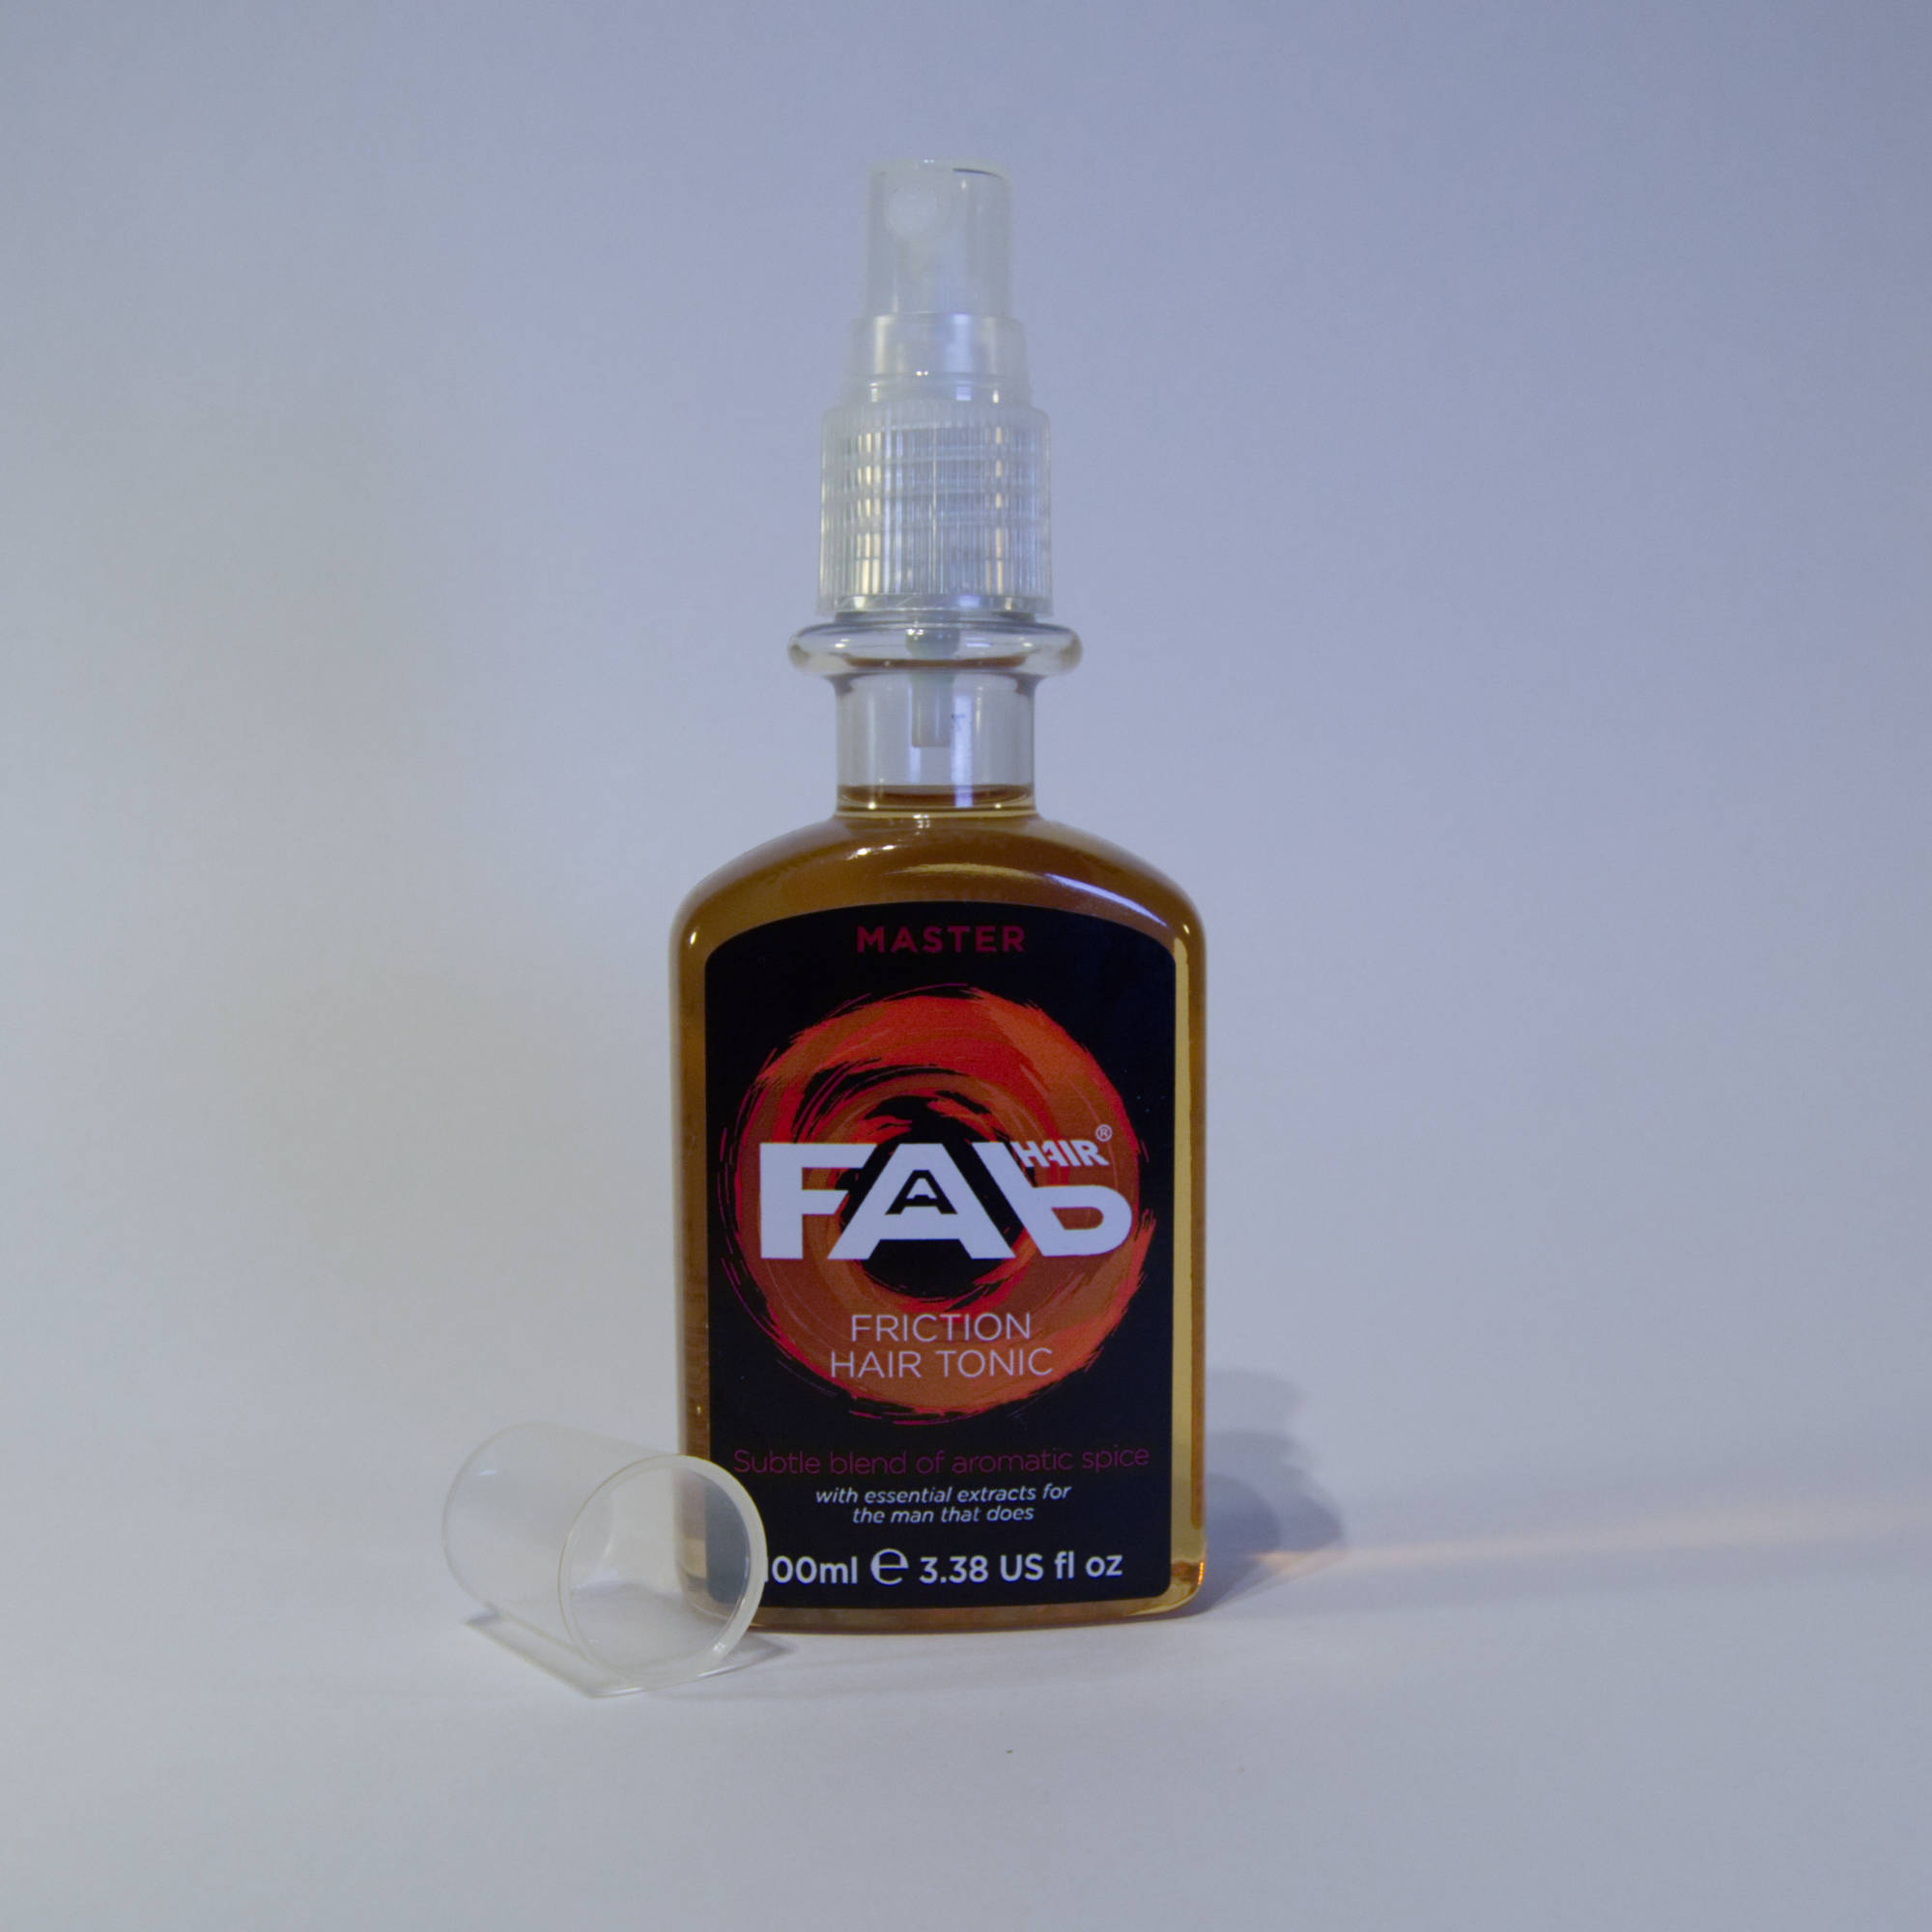 100ml bottle of Master flavoured FAB friction hair tonic with Spray Nozzle